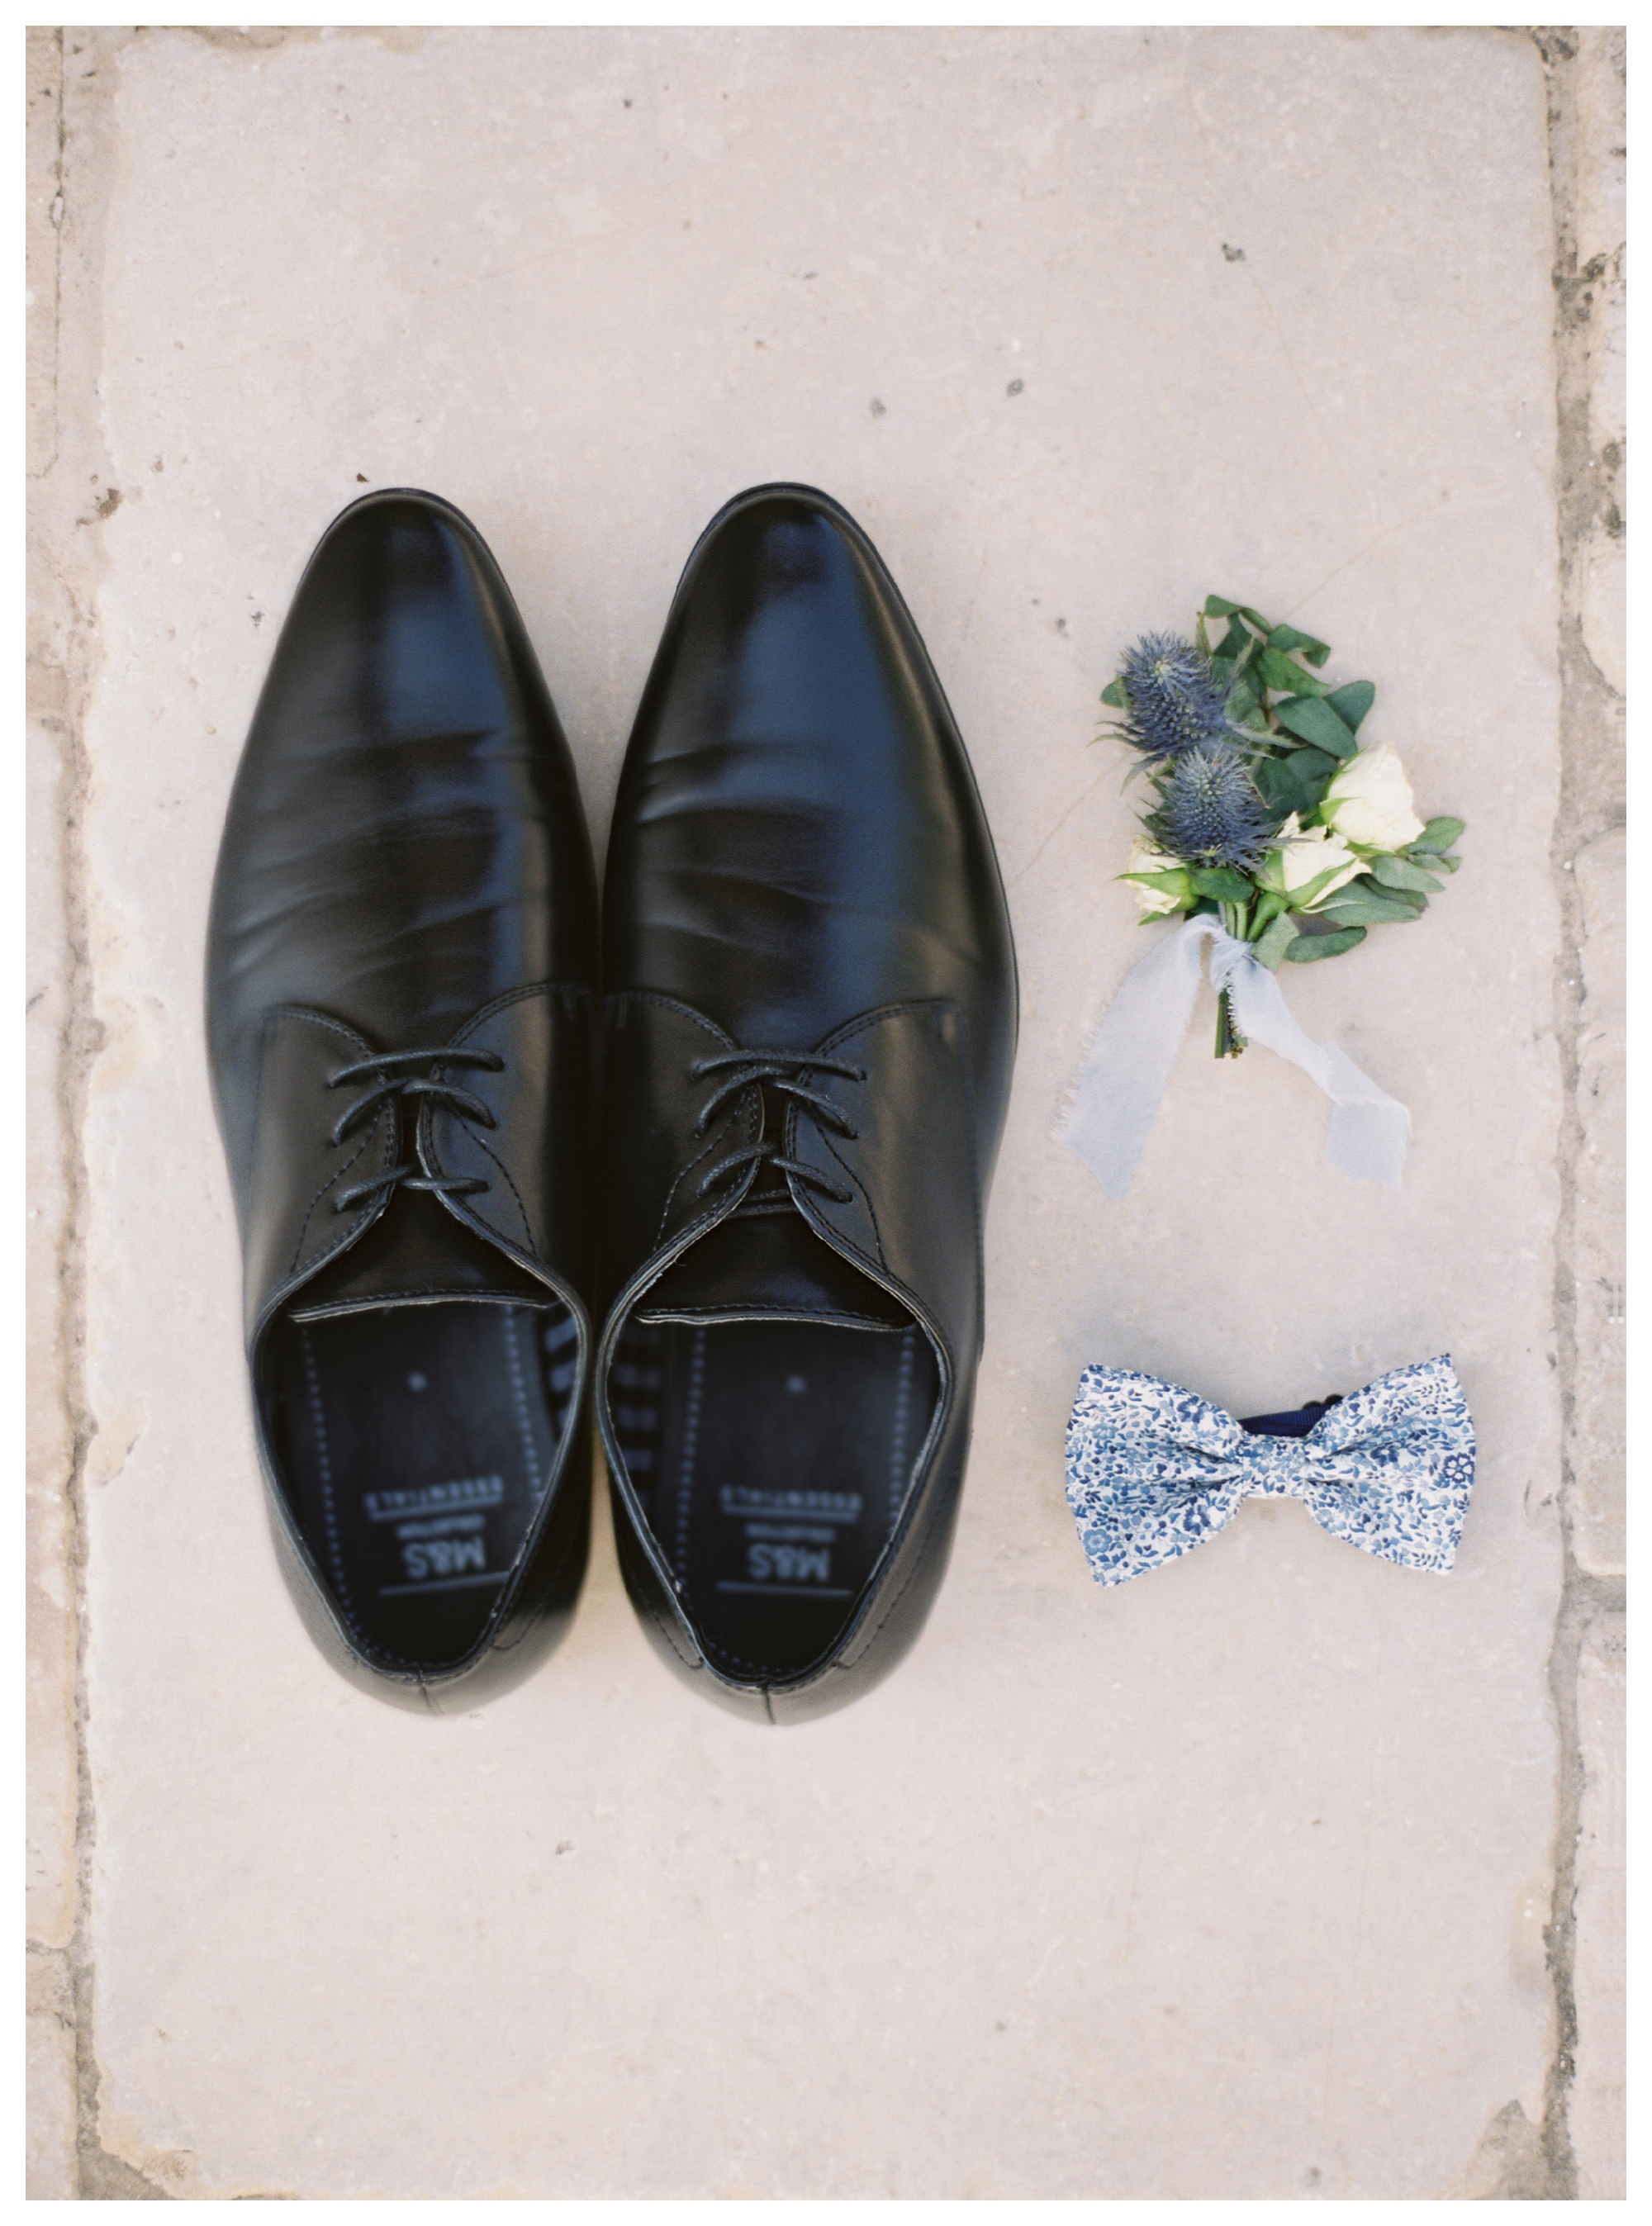 groom shoes, bowtie, boutonniere